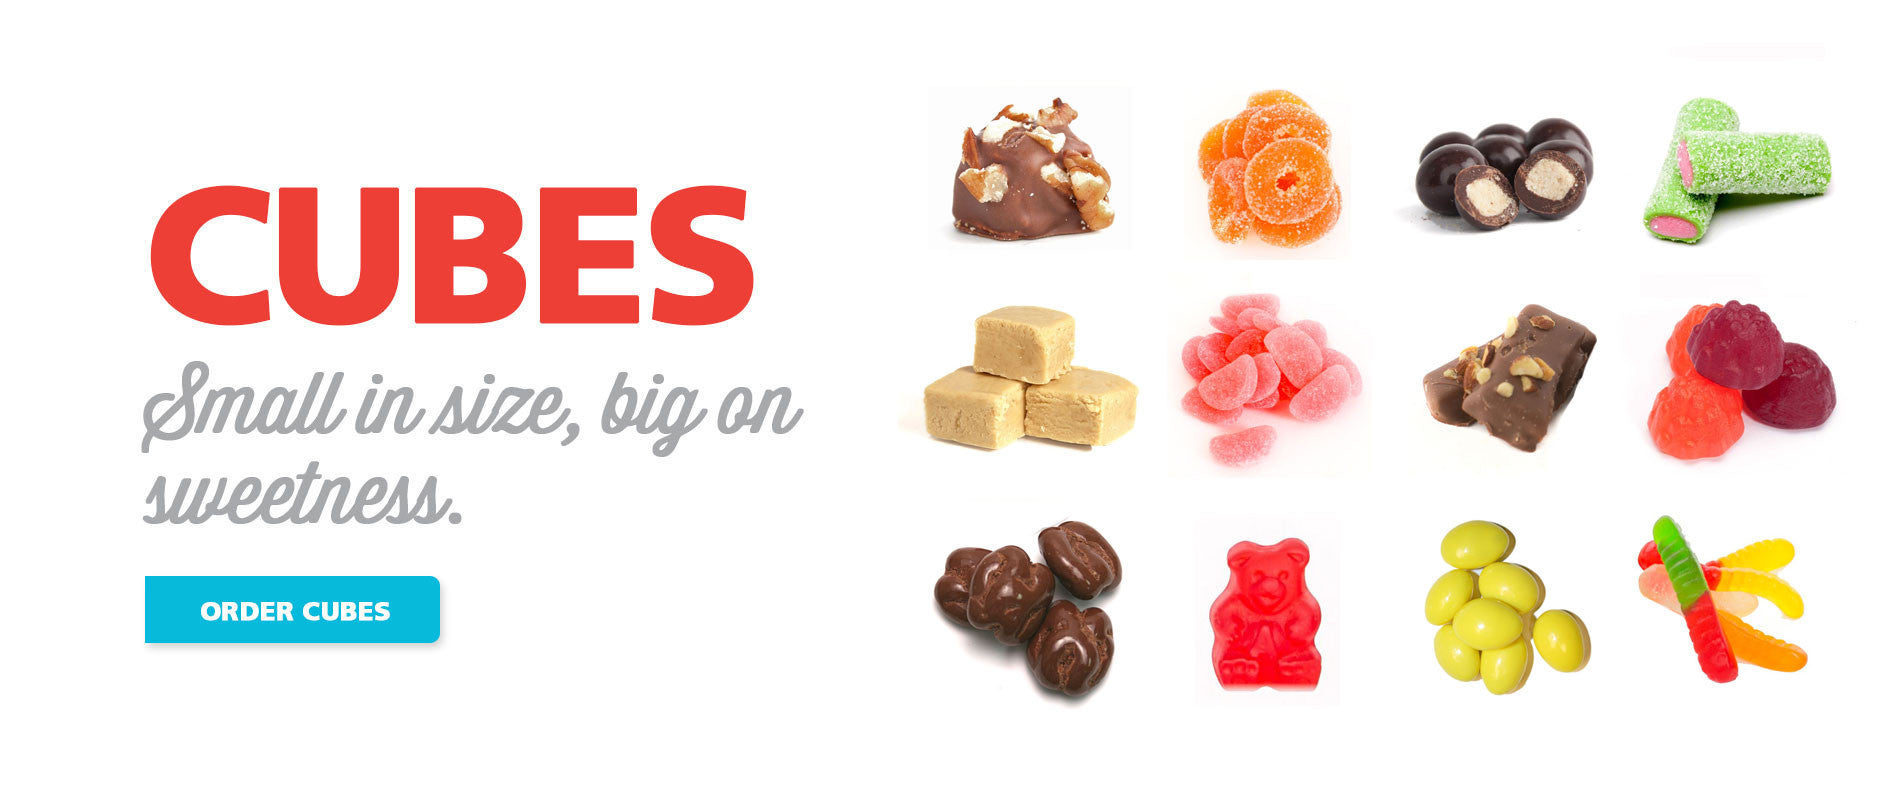 Gourmet Chocolate Shop And Candy Store – Buy Online